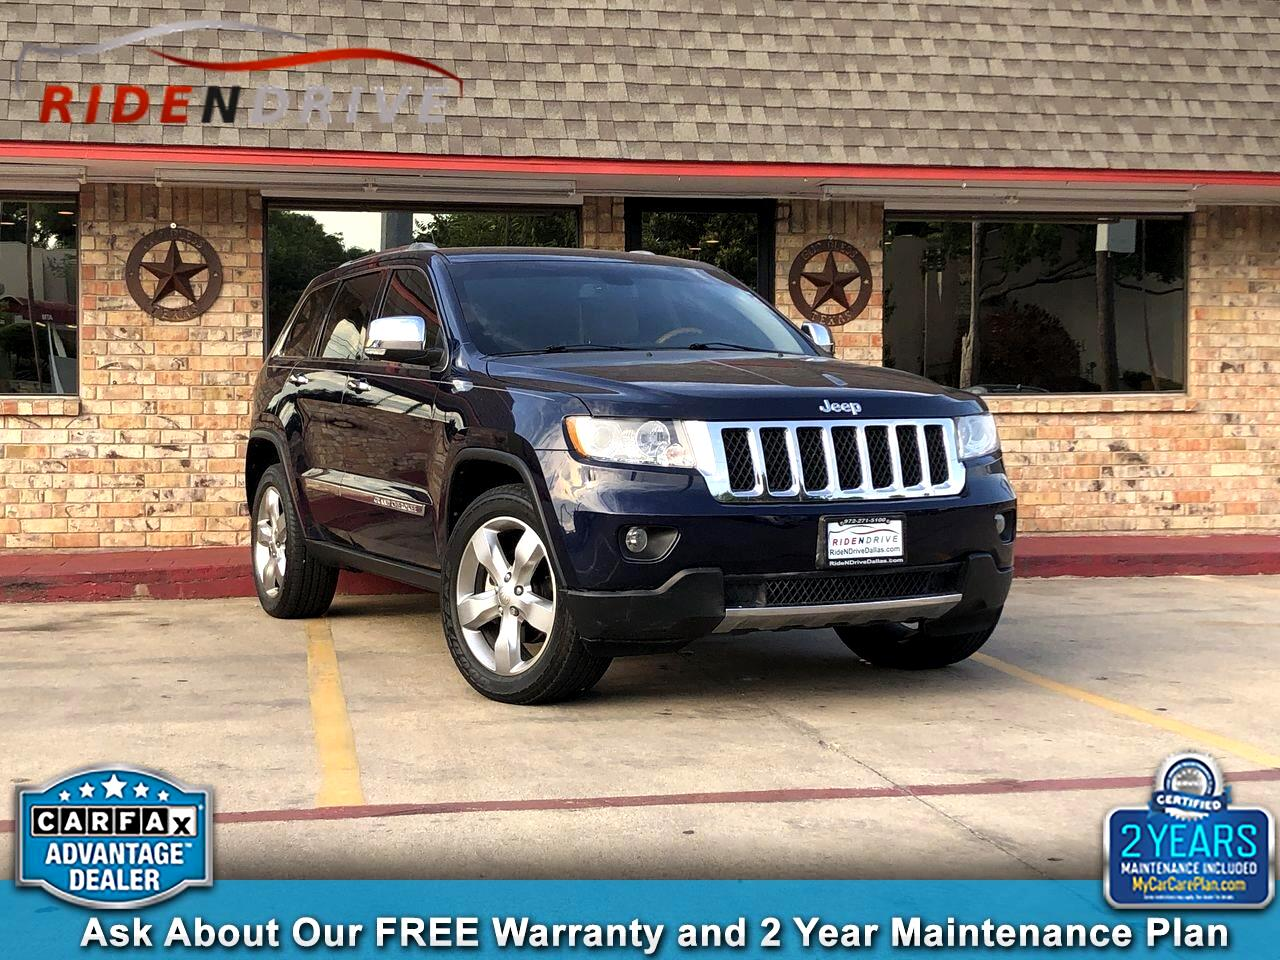 2012 Jeep Grand Cherokee RWD 4dr Overland